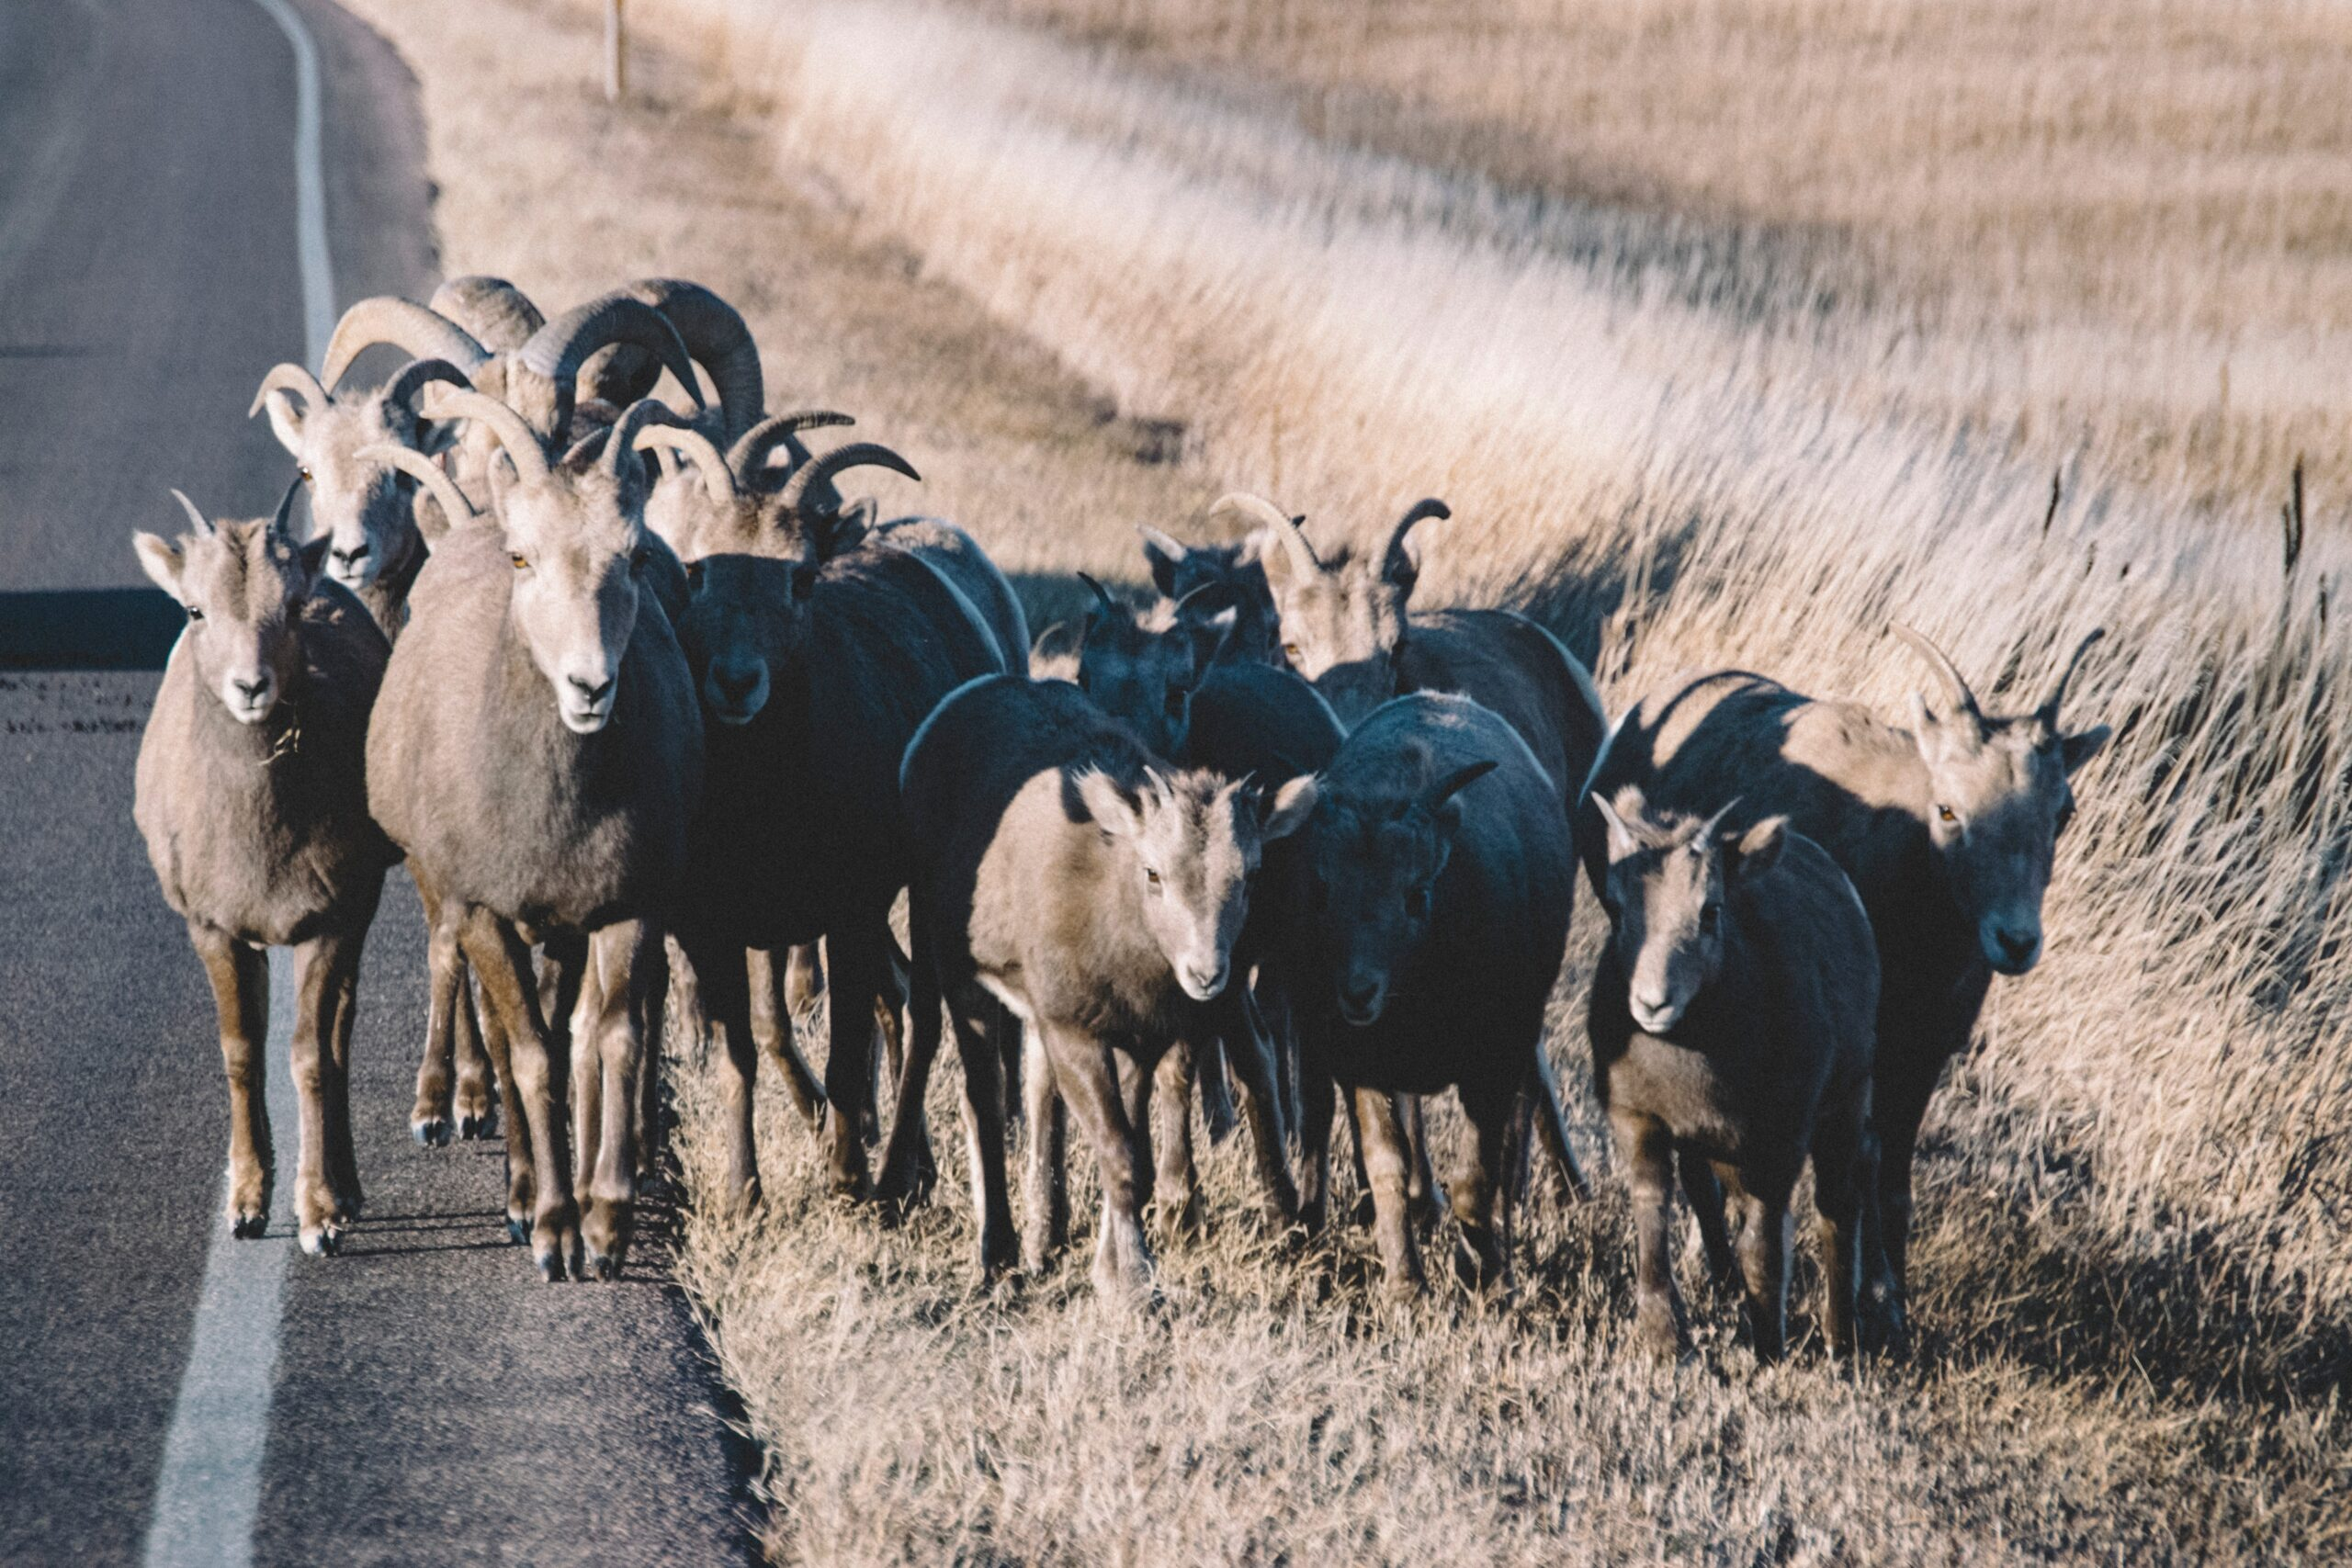 Herd Mentality examples (7 Examples)